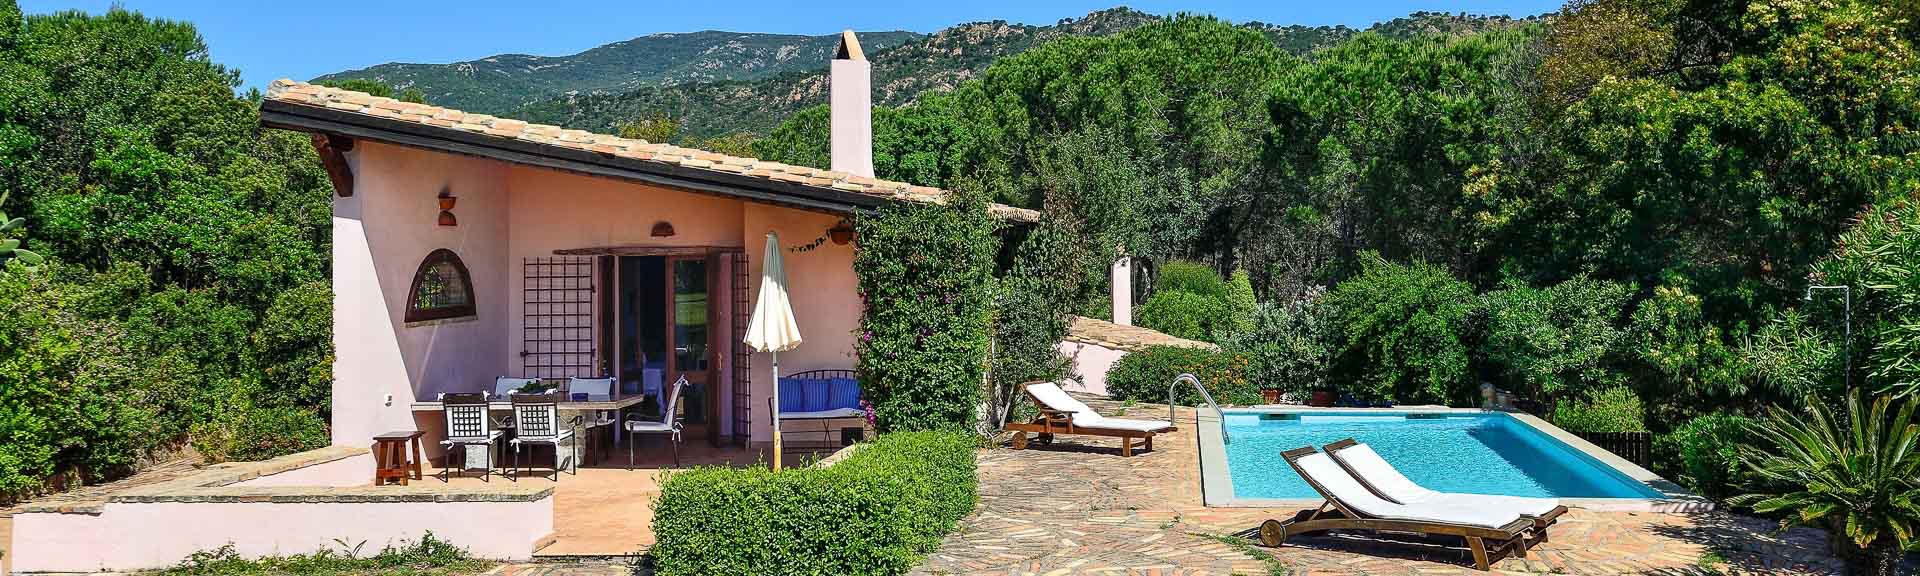 Villa Fiori 3 mit Pool, Is Molas, Sardinien